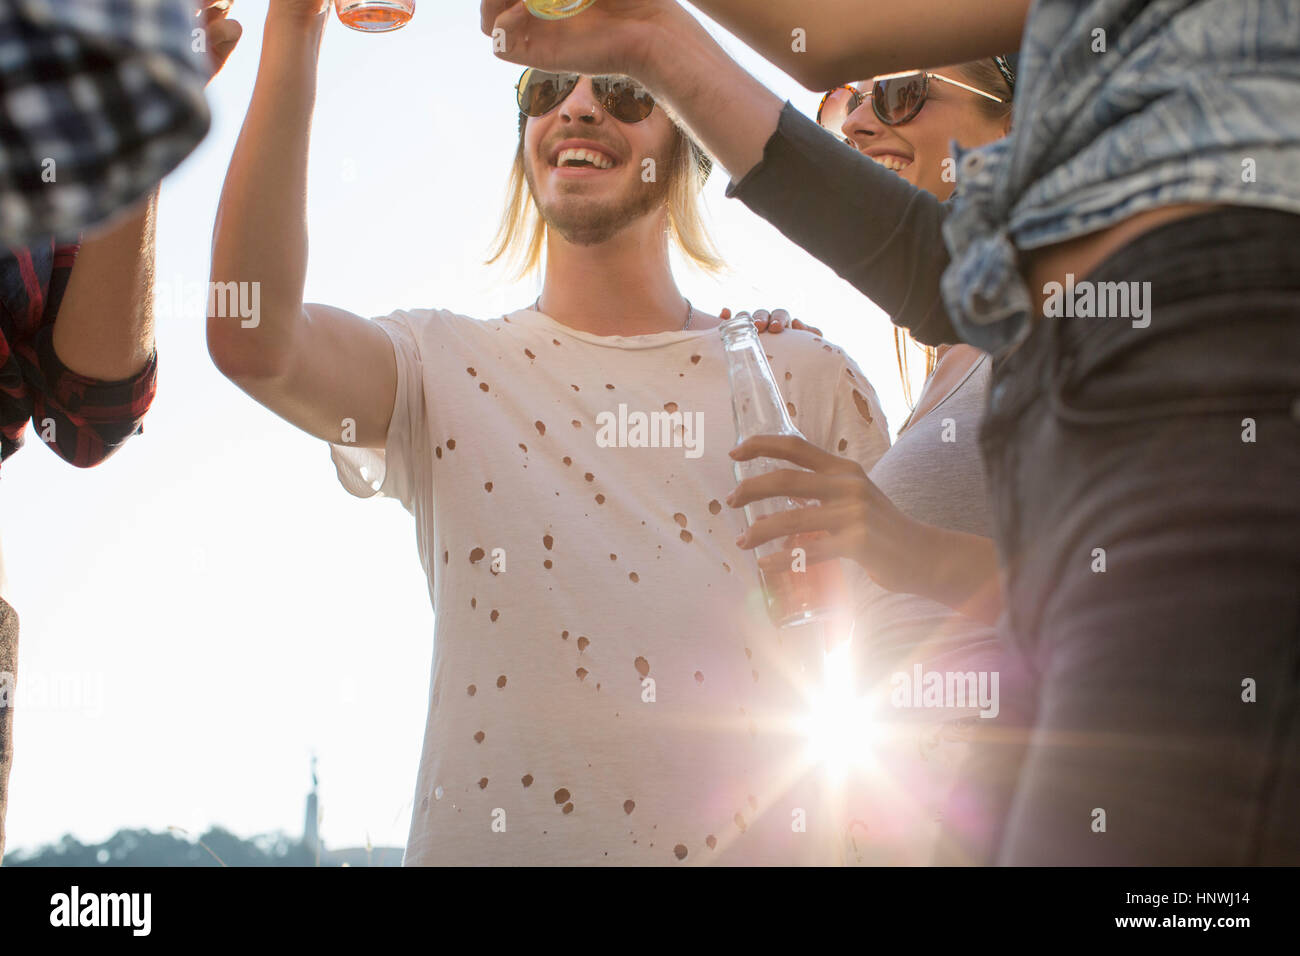 Adult friends partying on roof terrace - Stock Image